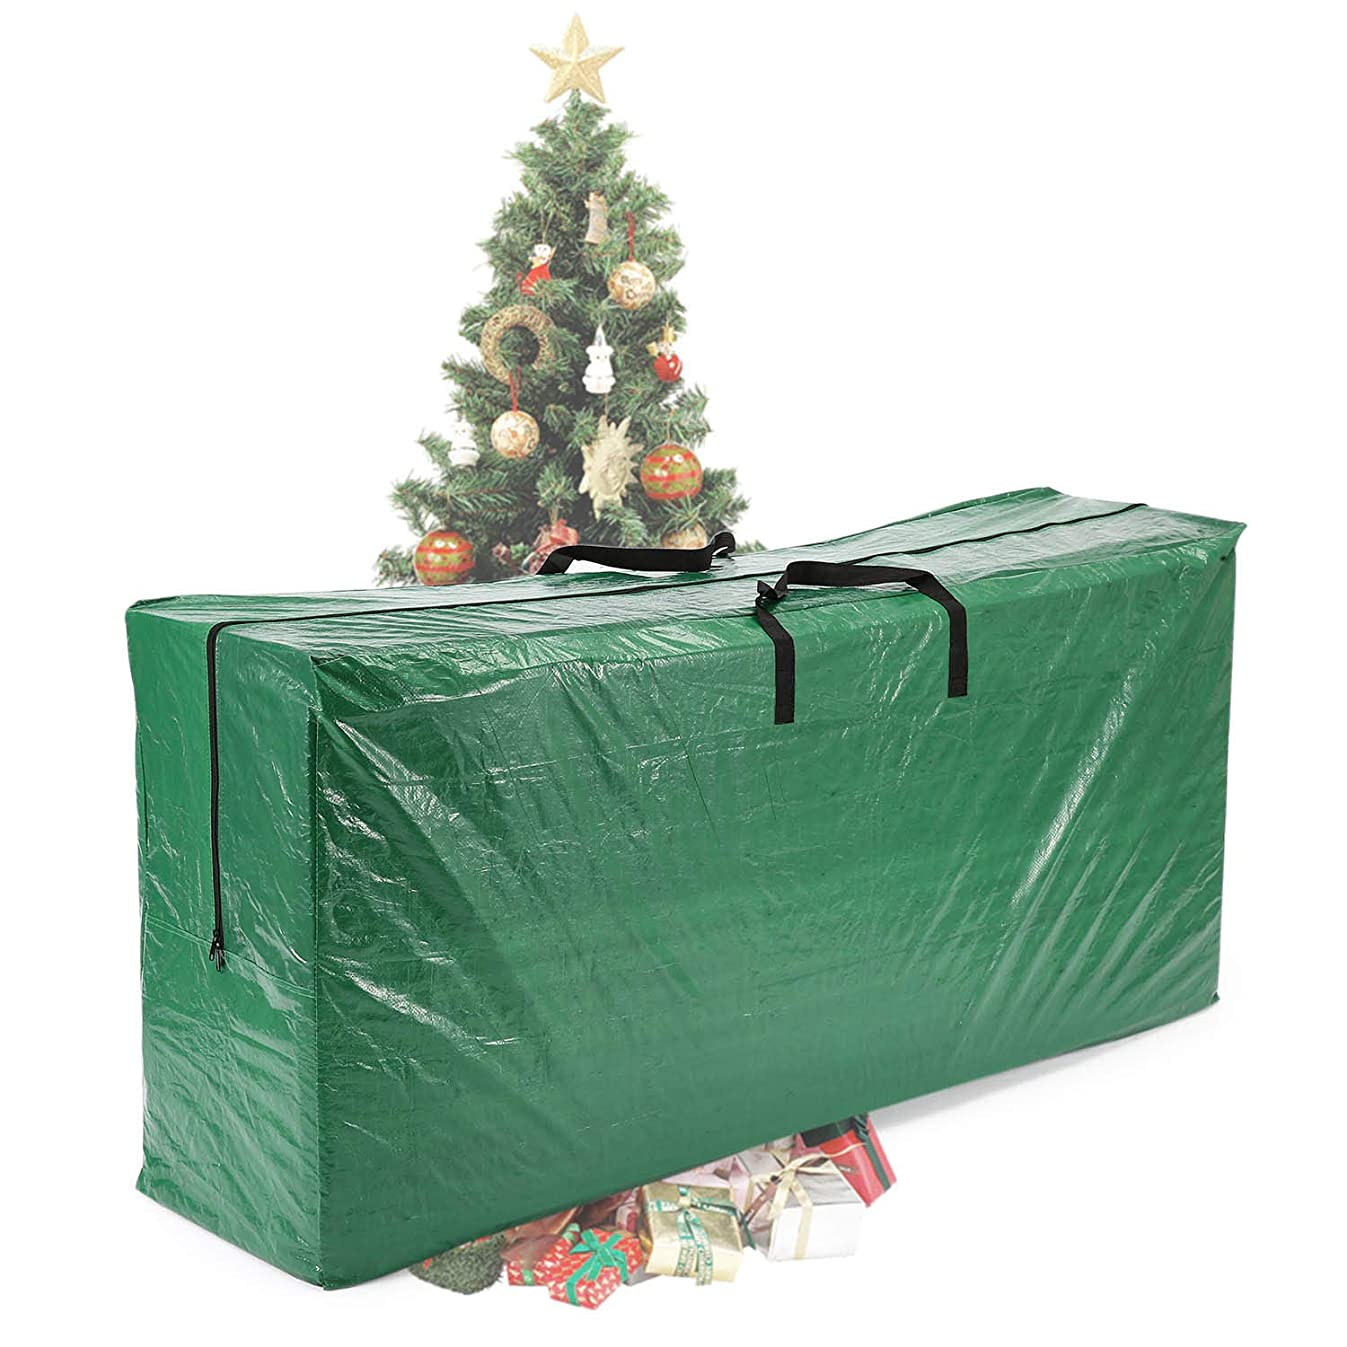 Vencer Green Extra Large Christmas Tree Bag for 9 Foot Tree Holiday 65